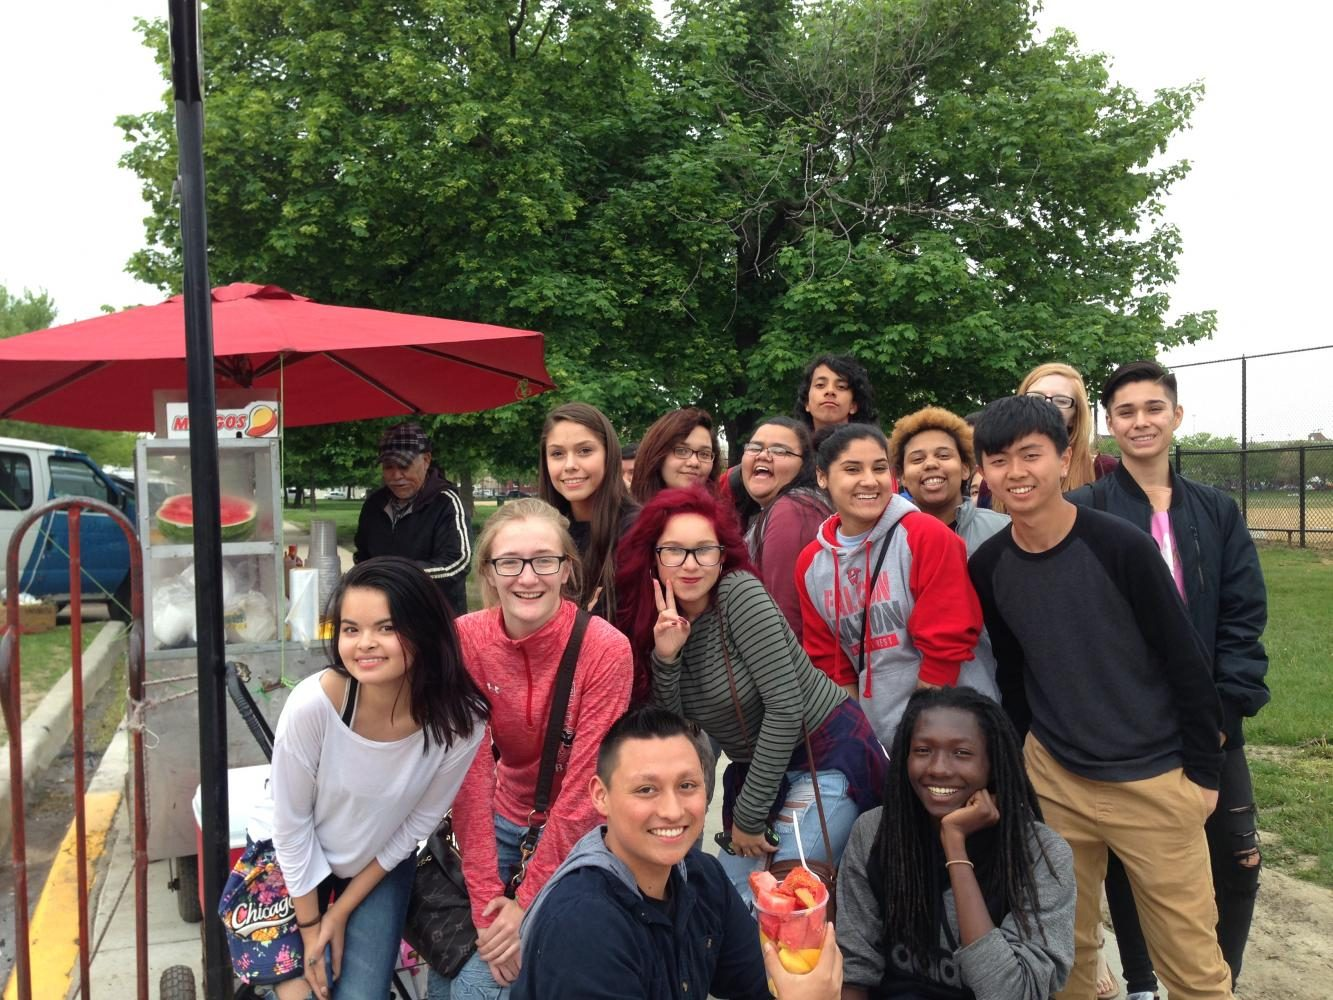 Spanish Club takes a break at a fruit stand on their 2016 Chicago trip.